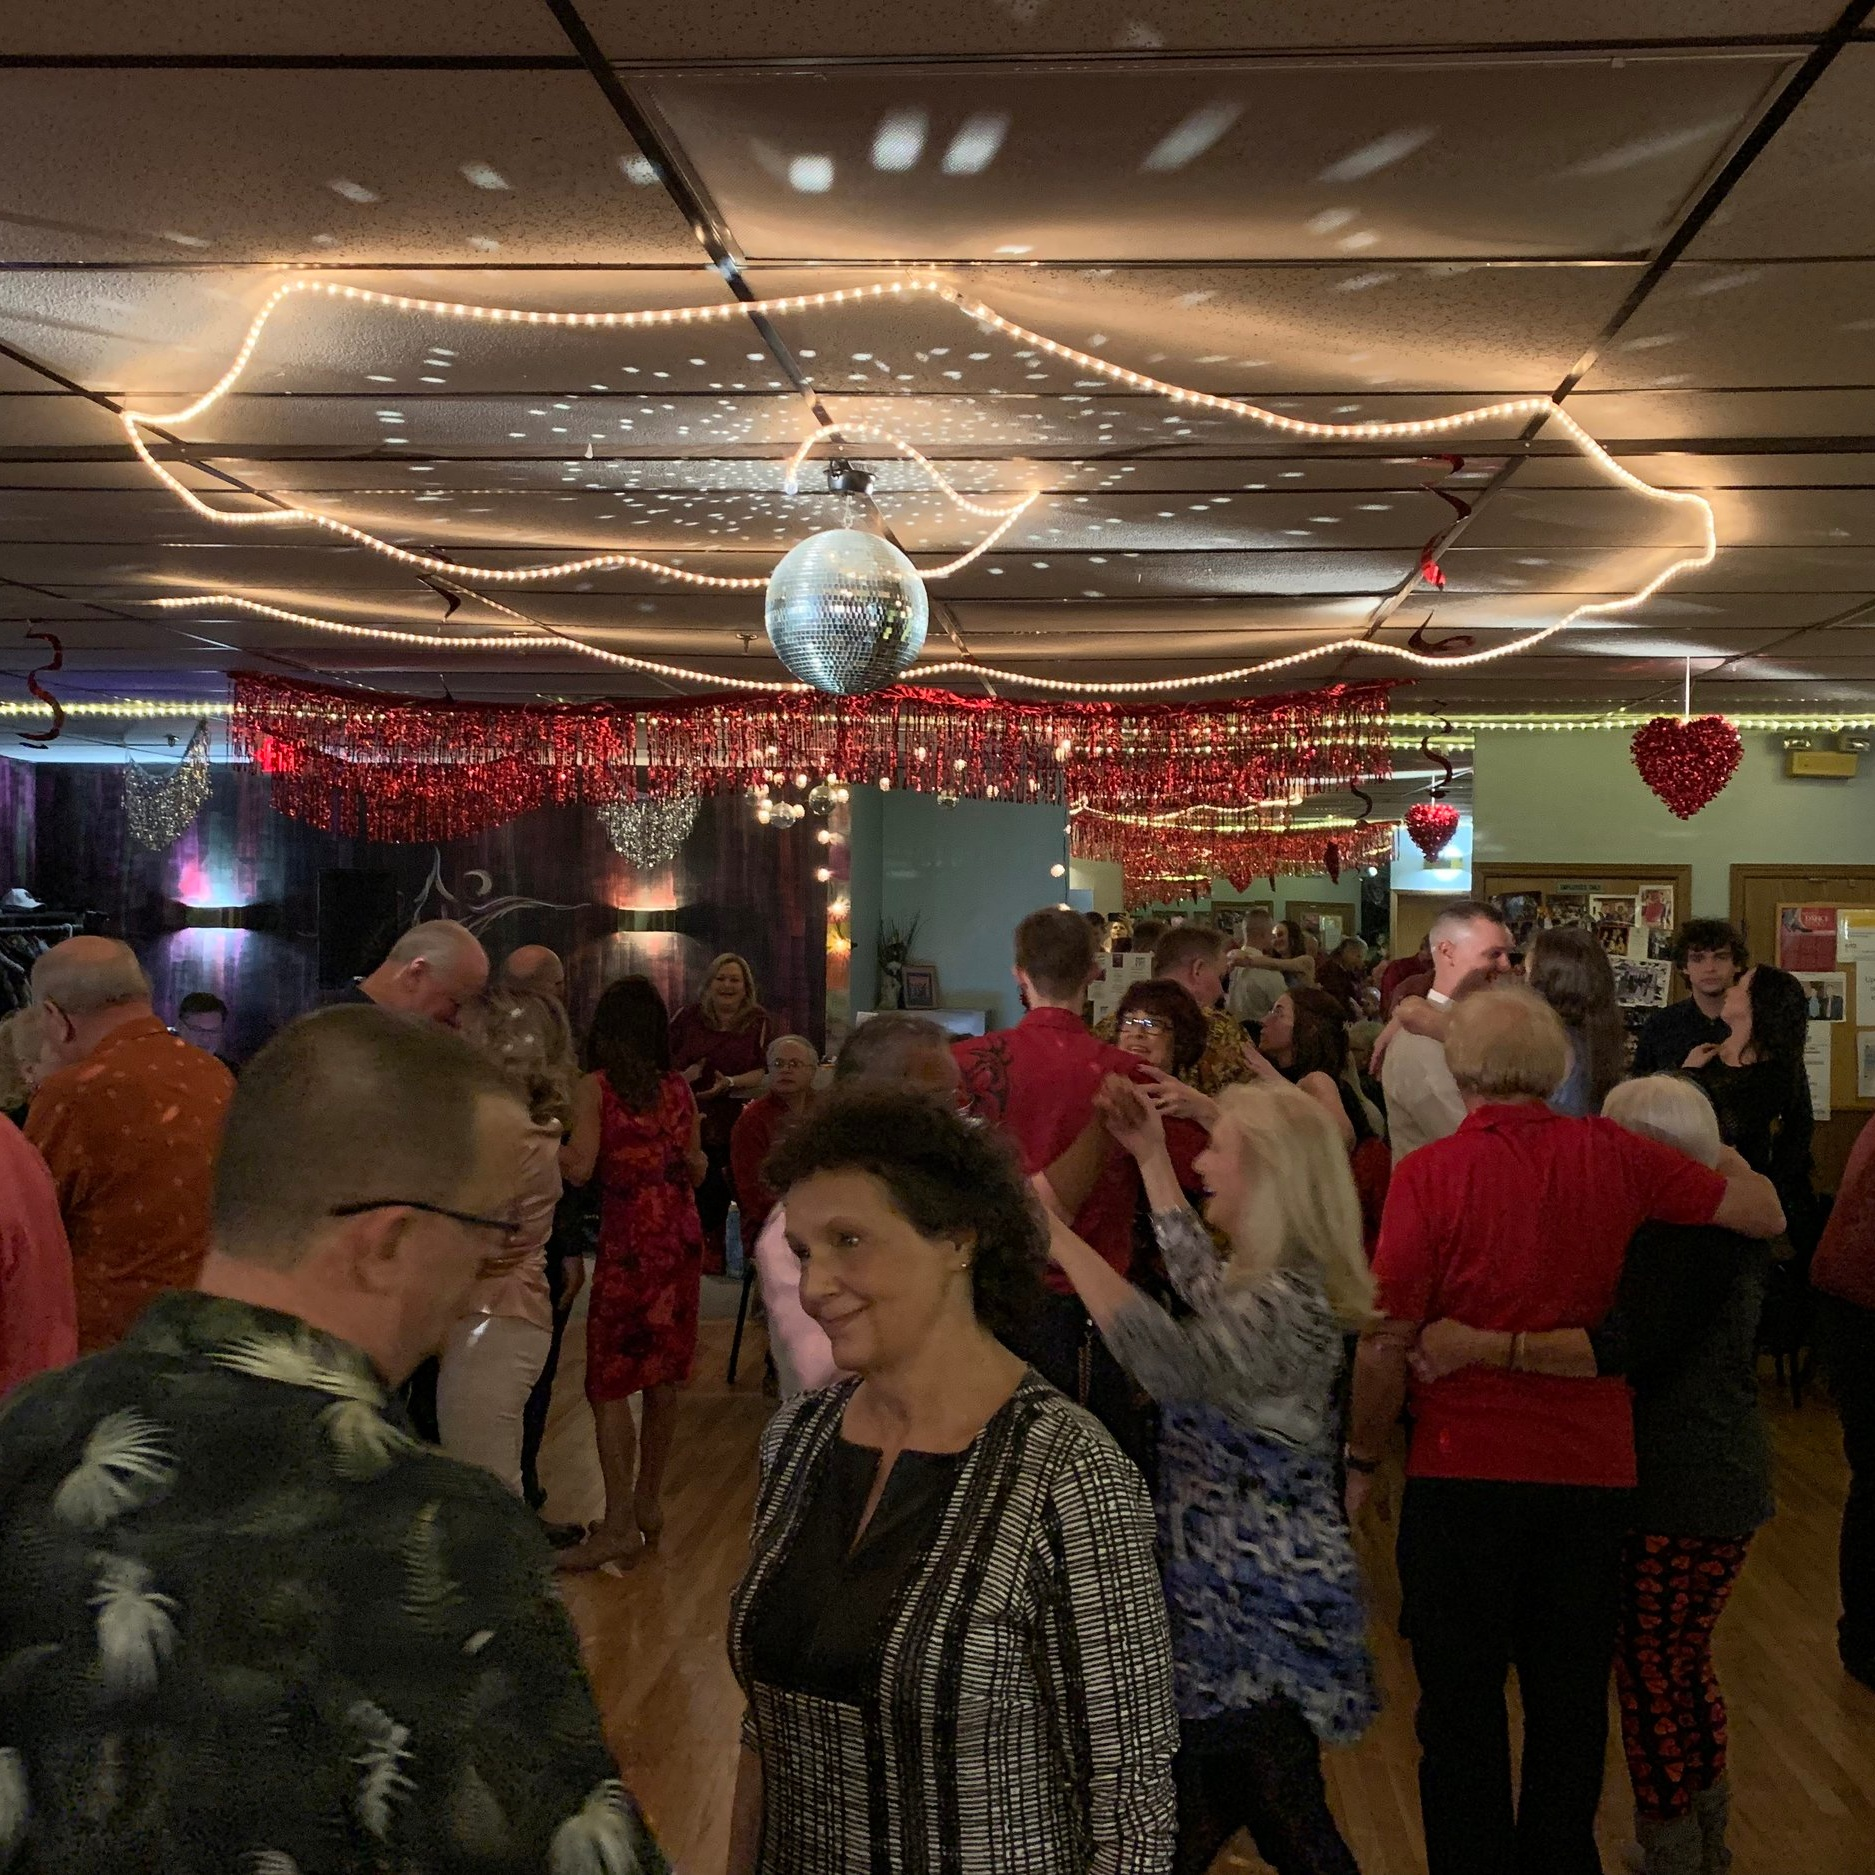 "Practice Session/ Dance Party - -Last, but certainly not least, is the Practice Session/Dance Party. This is an incredibly fun social dance time that allows you to take what you've learned and practice while enjoying complementary refreshments and appetizers in between songs! This time is crucial for learning what dances go with what song and practicing your leading/following skills all while having your instructor right there to help you! We want you to get to know everyone, have fun, switch partners, and feel included in our dance family! We also do theme parties and have exciting live music every single month! Our practice sessions are on Tuesdays following the group class and on the 1st, 3rd, and 5th Fridays of the month following the group class. We want our studio to be a ""club like"" atmosphere that is comfortable for all dancers to enjoy!"